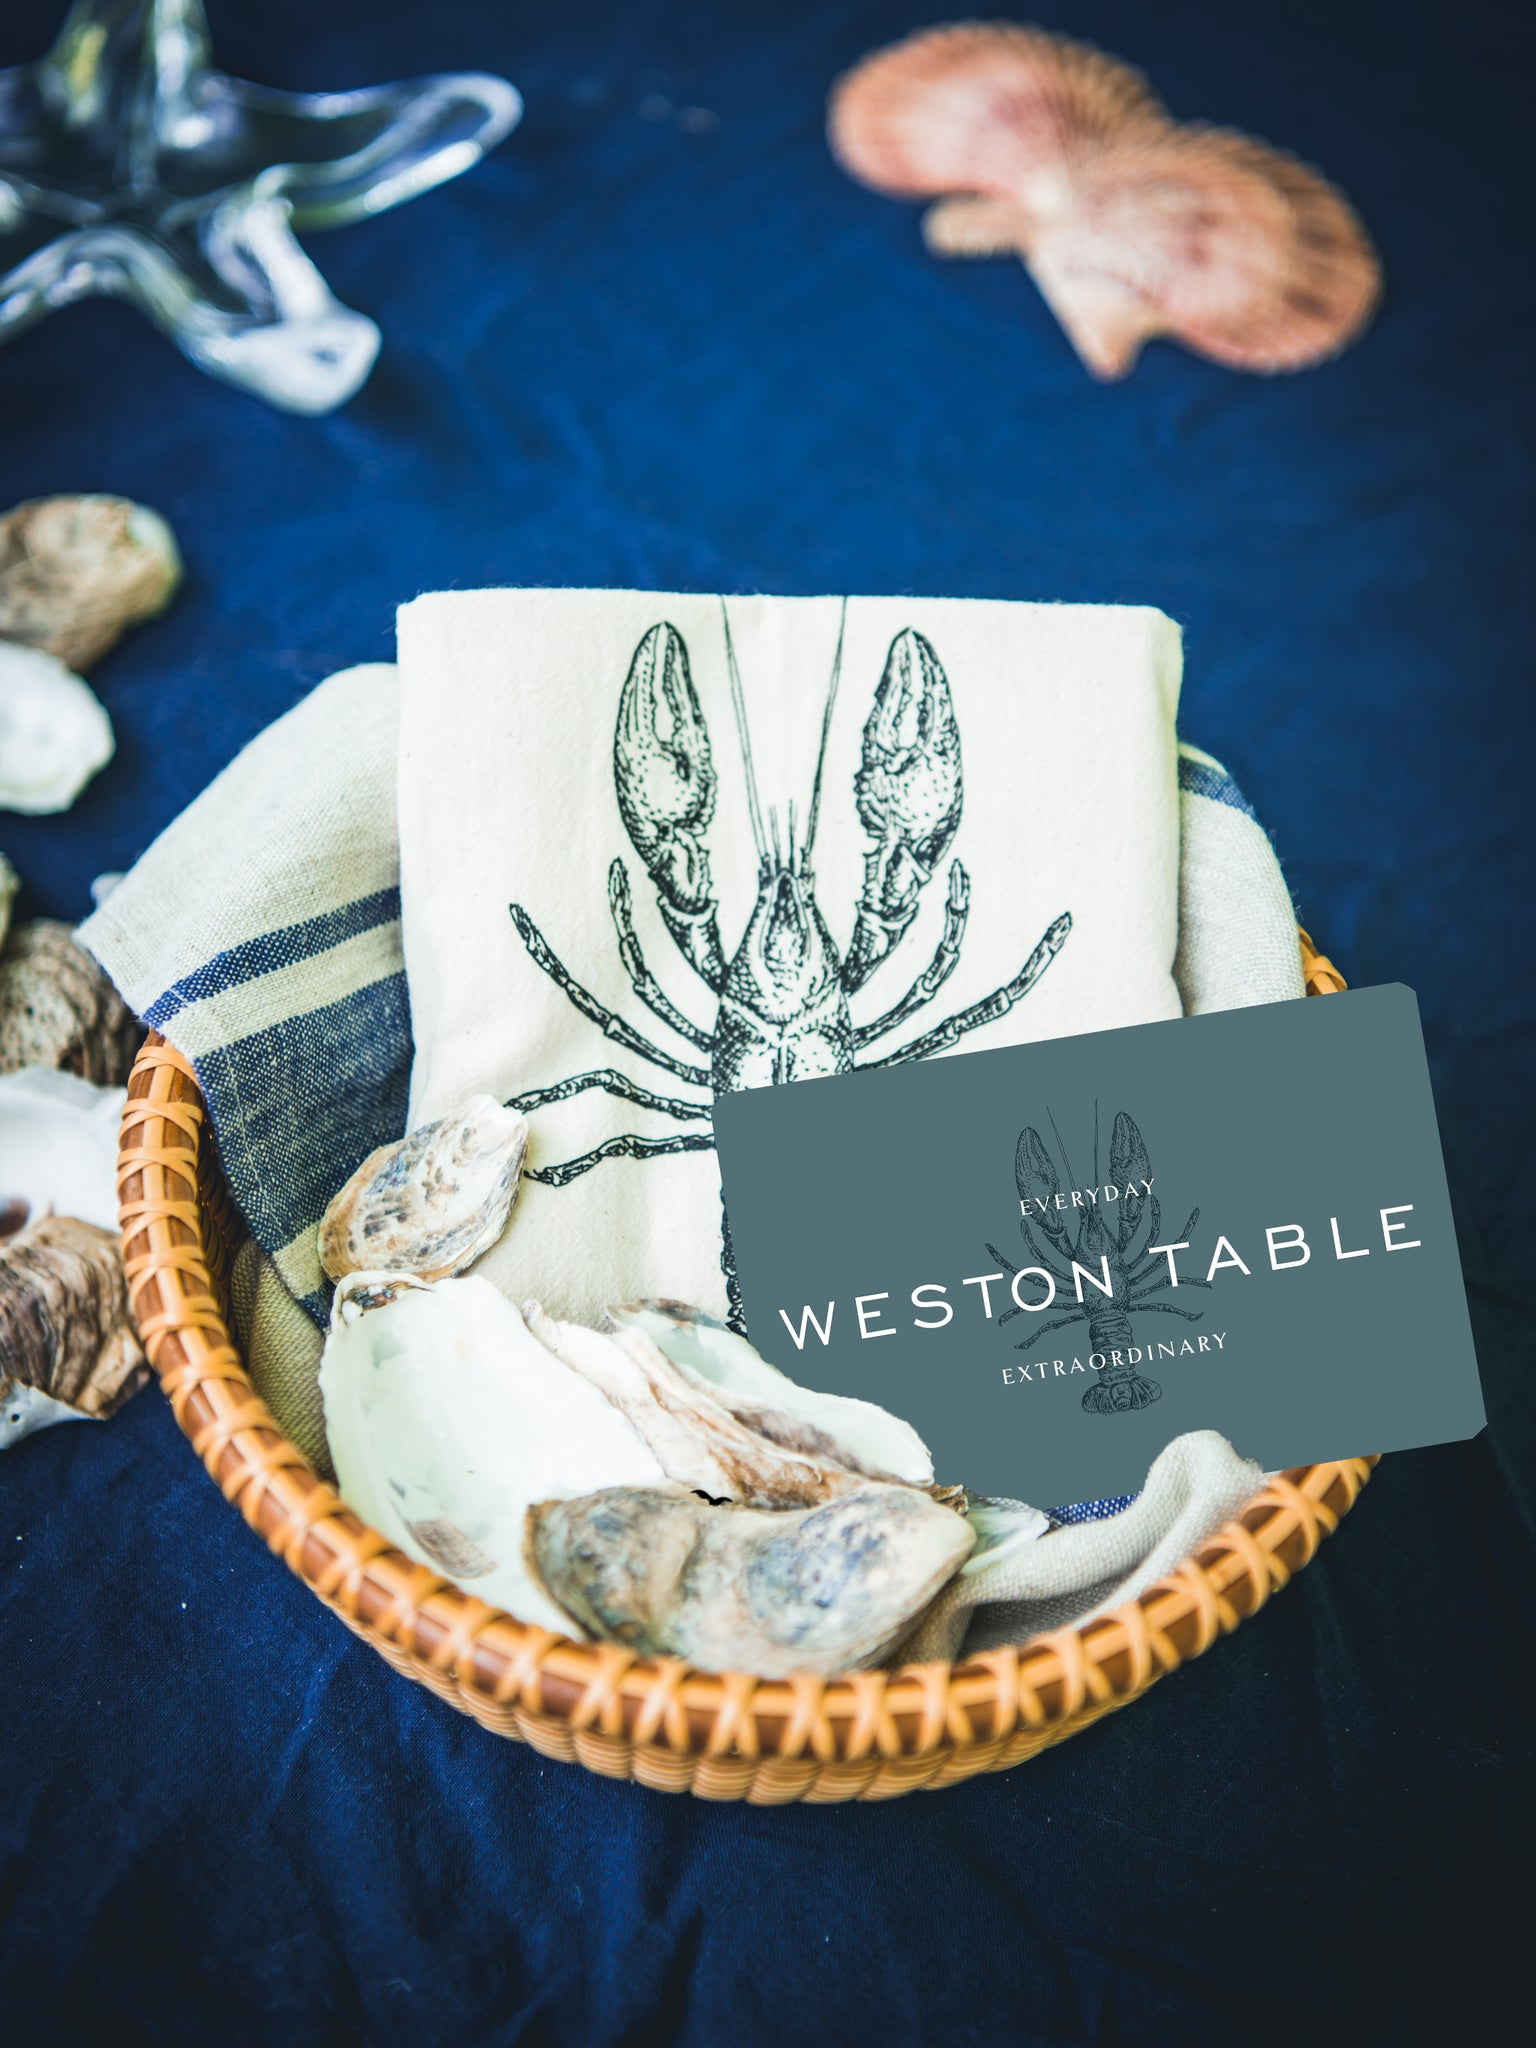 WT Everyday Extraordinary Gift Card Weston Table